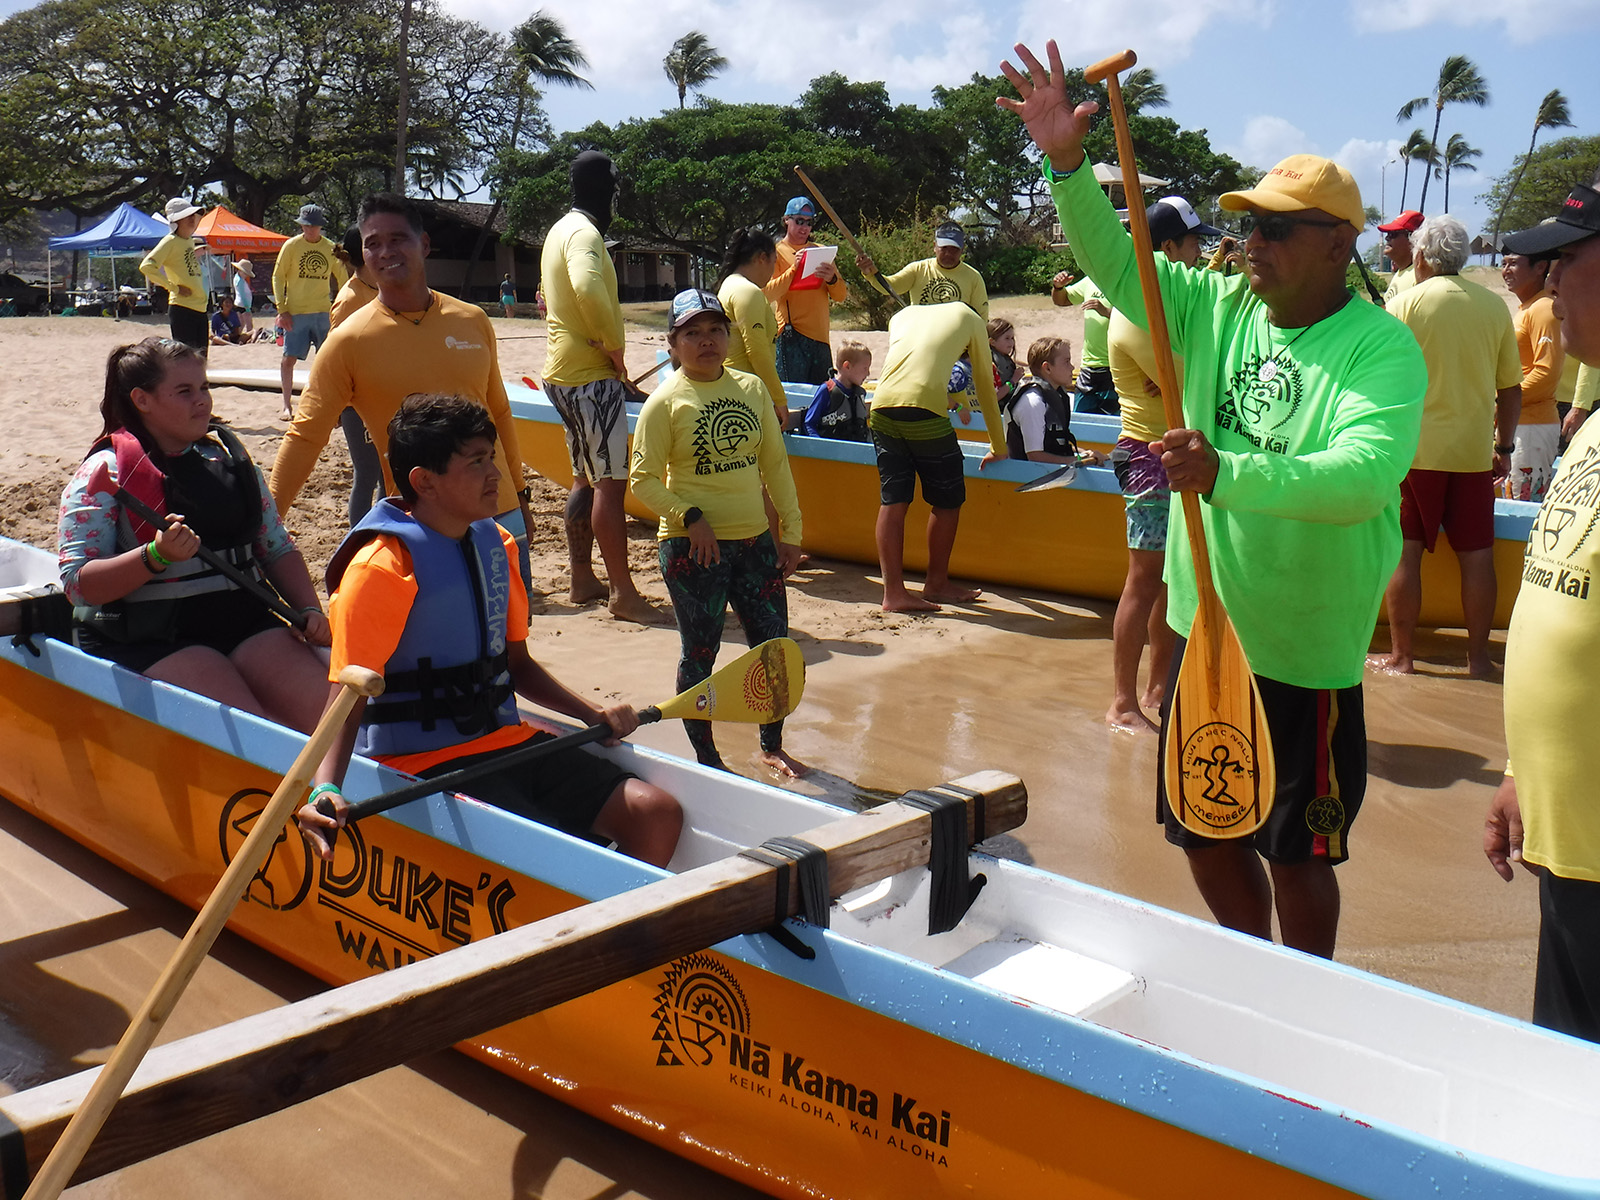 <p>A volunteer instructs kids on how to hold their paddles as they prepare to launch an outrigger canoe. Children are taught three main concepts based on the acronym KAI: Know your limits. Ask a lifeguard. Identify hazards.</p>